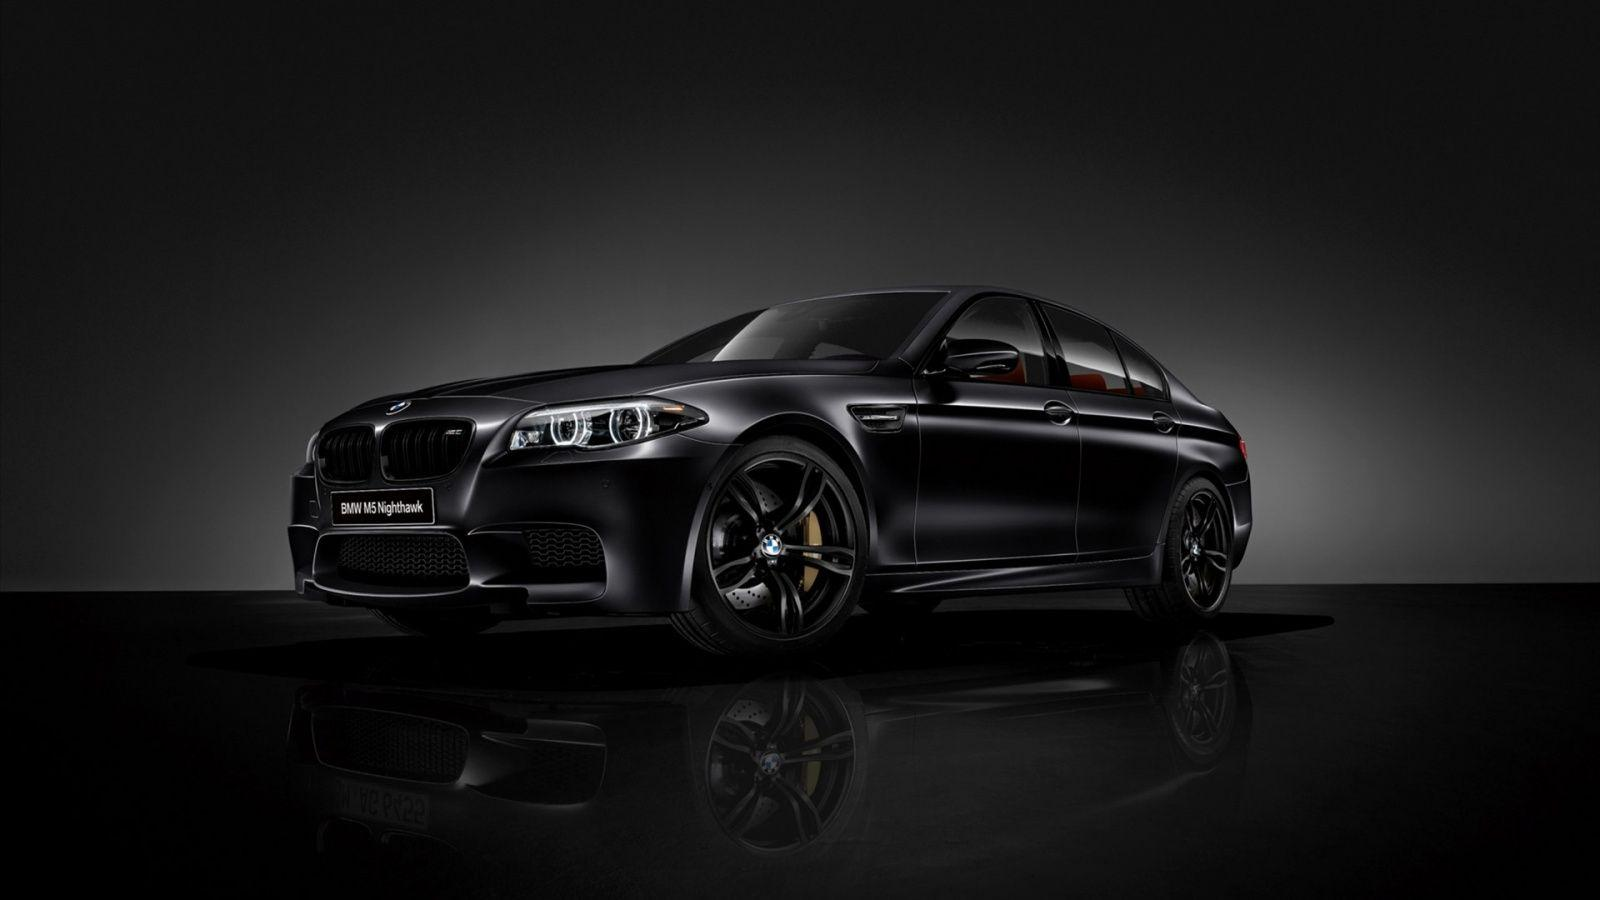 2013 BMW M5 Nighthawk Wallpapers